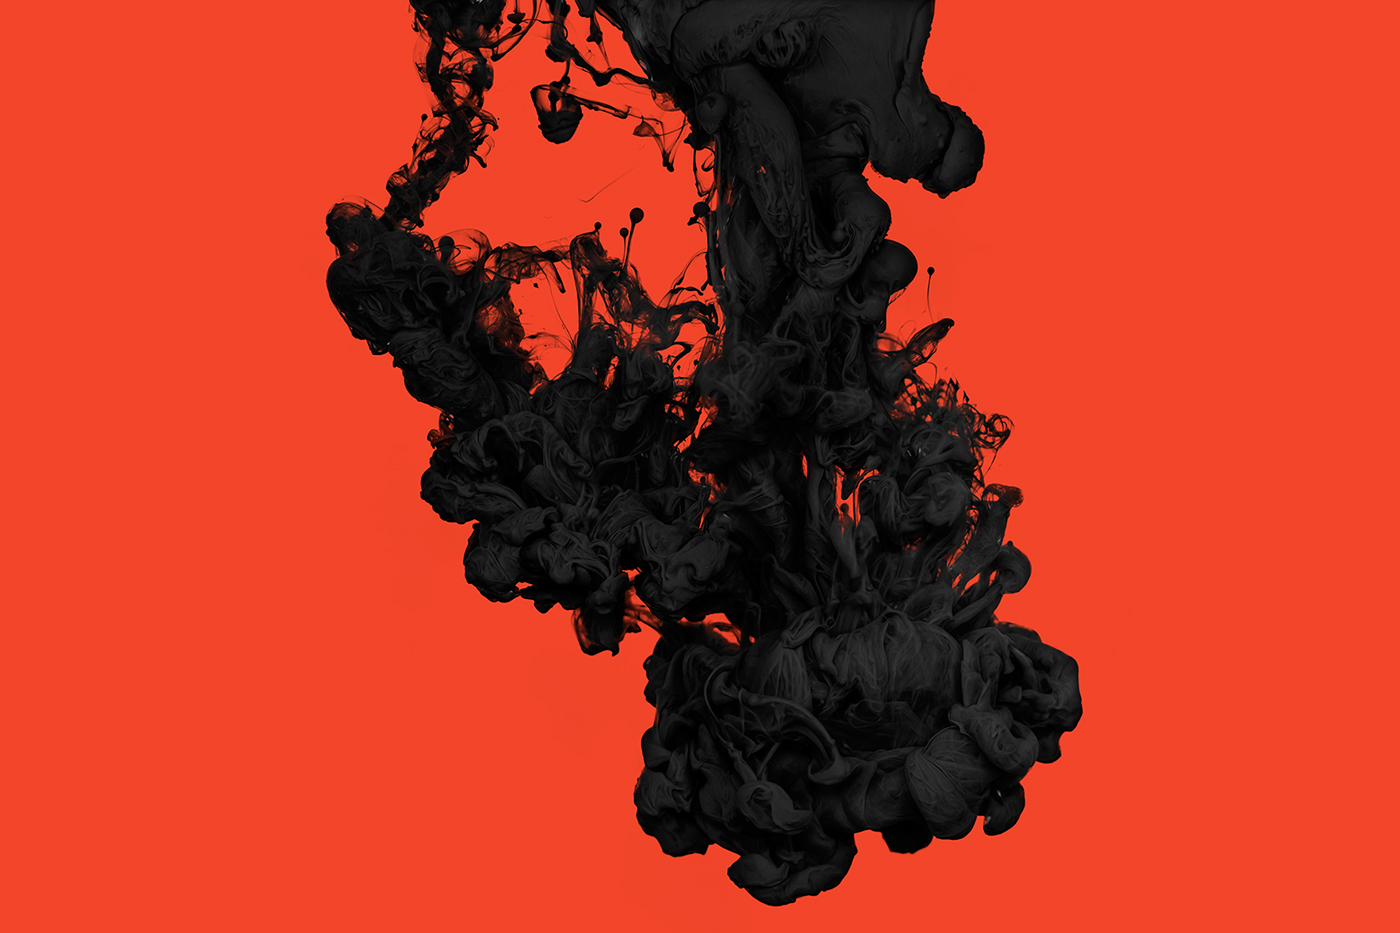 Ink & Water by Alberto Seveso